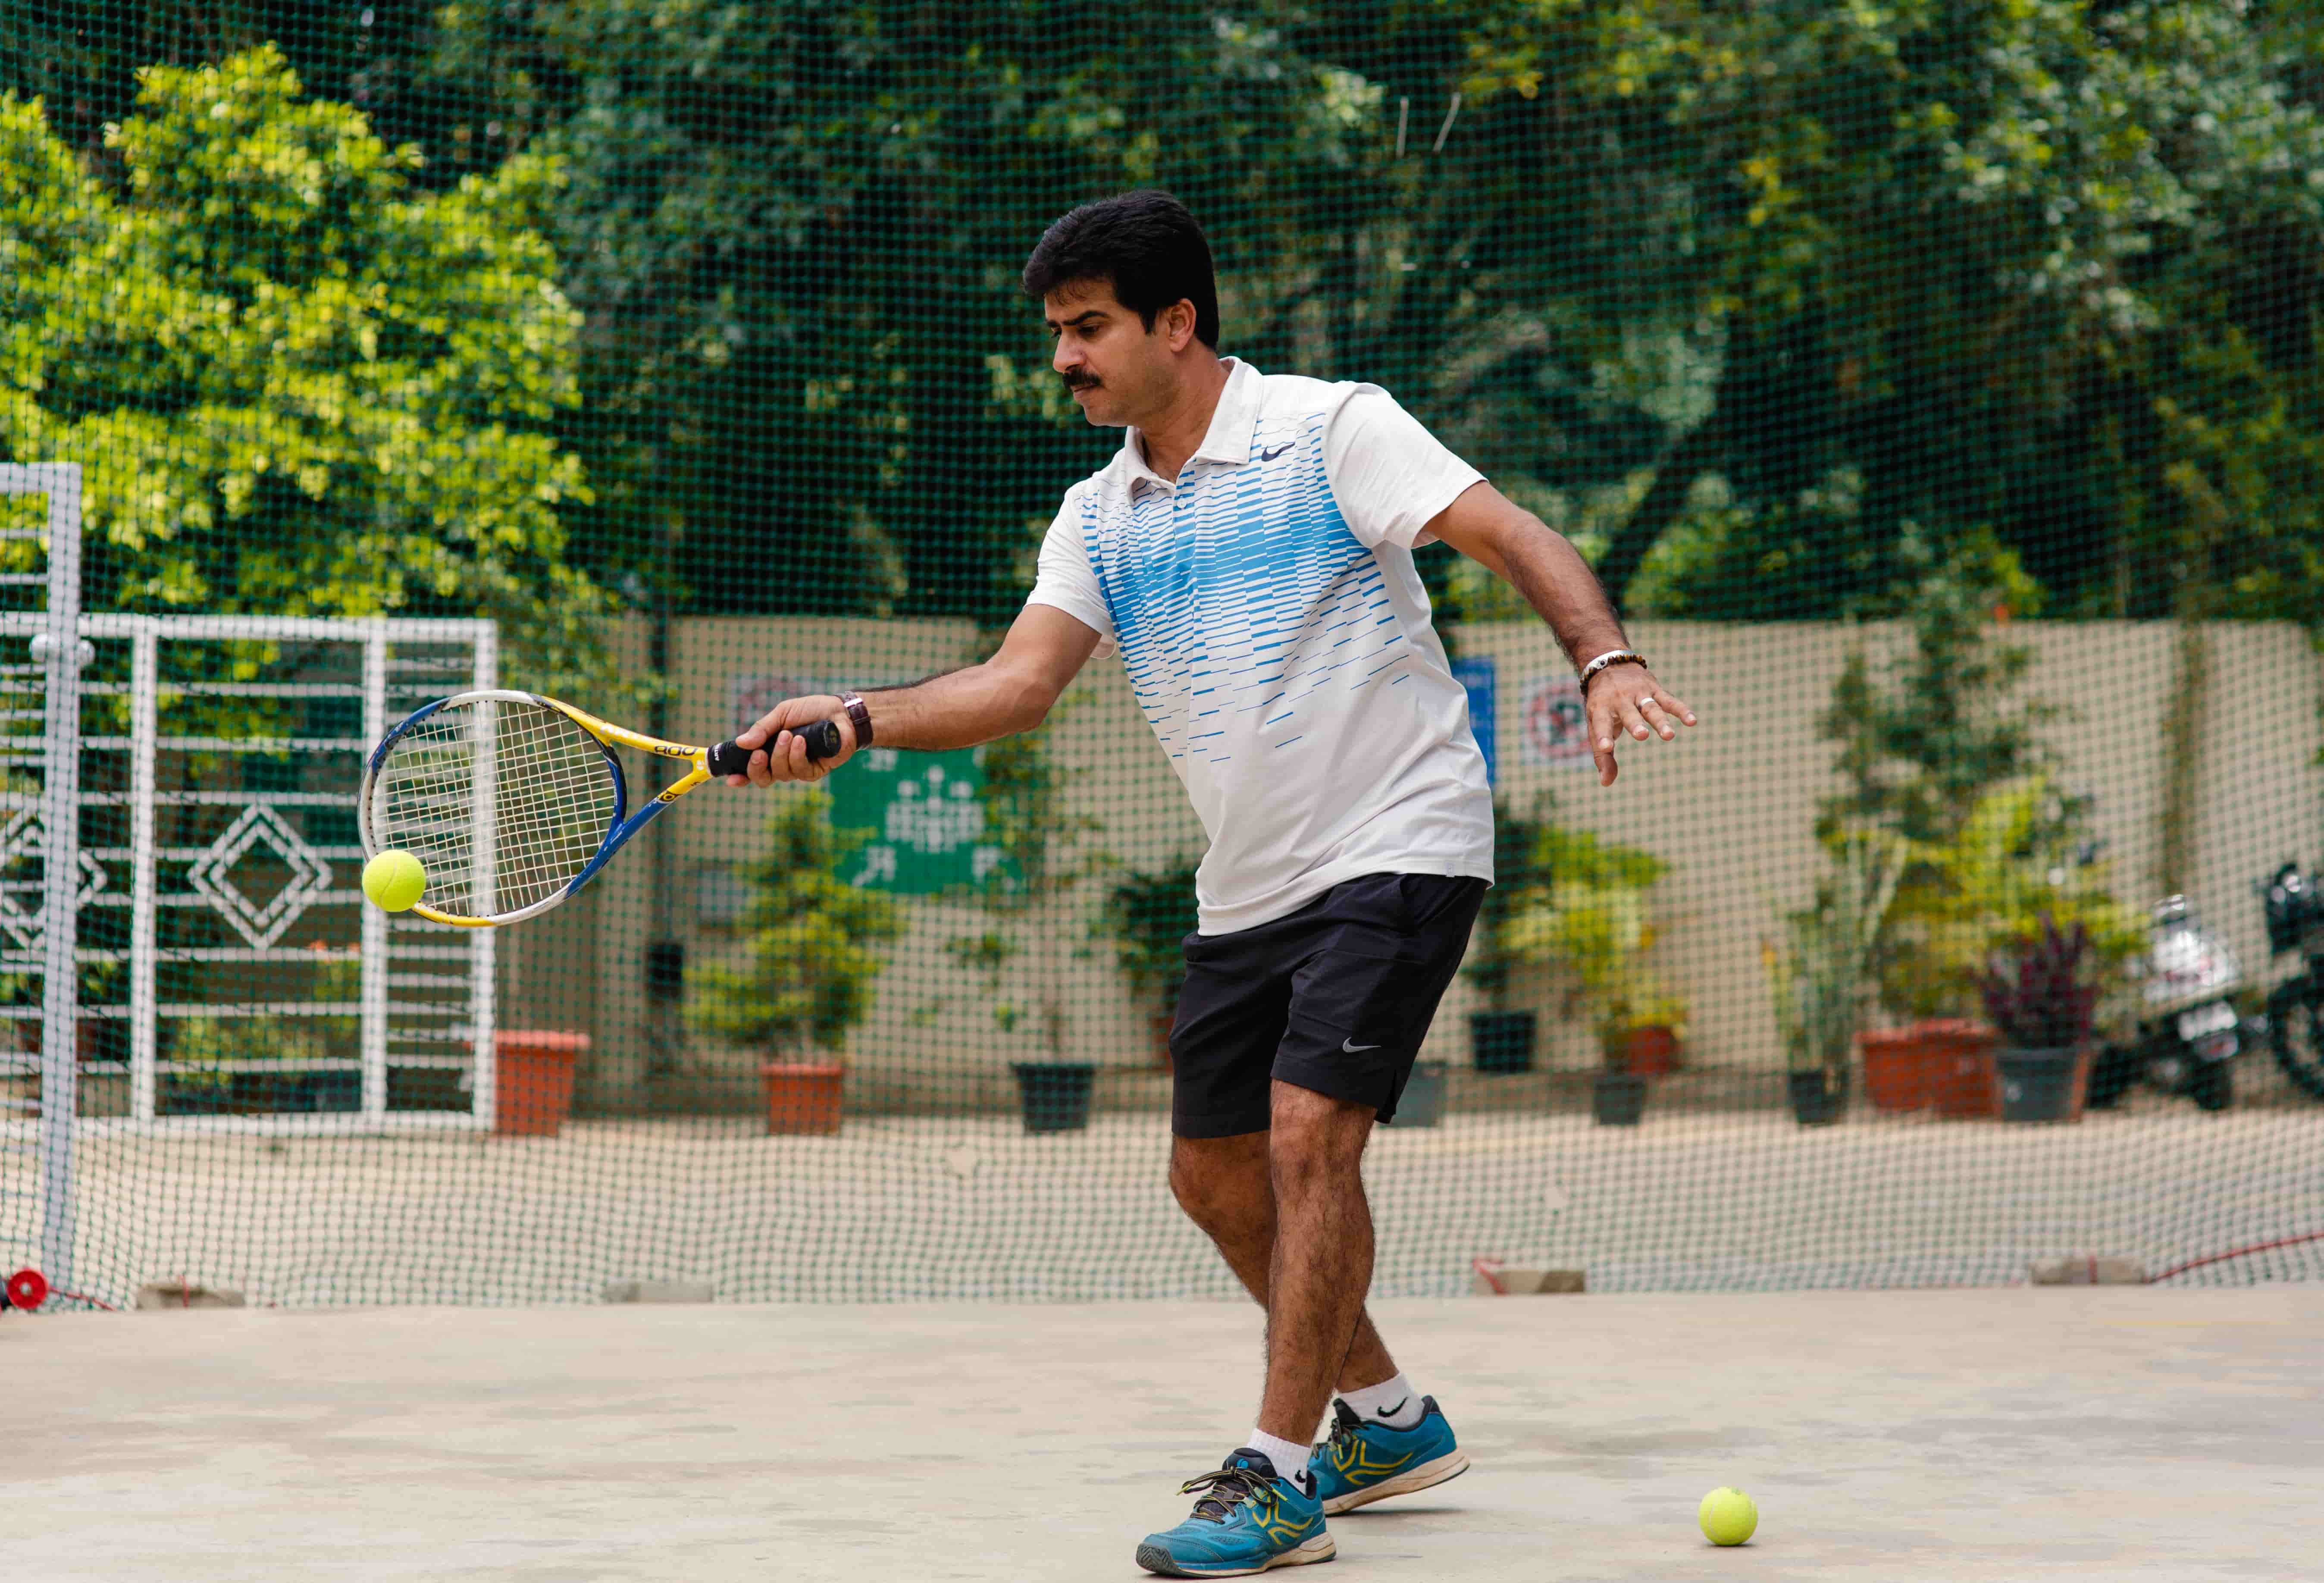 4 Tips & Drills To Improve Your Tennis Forehand